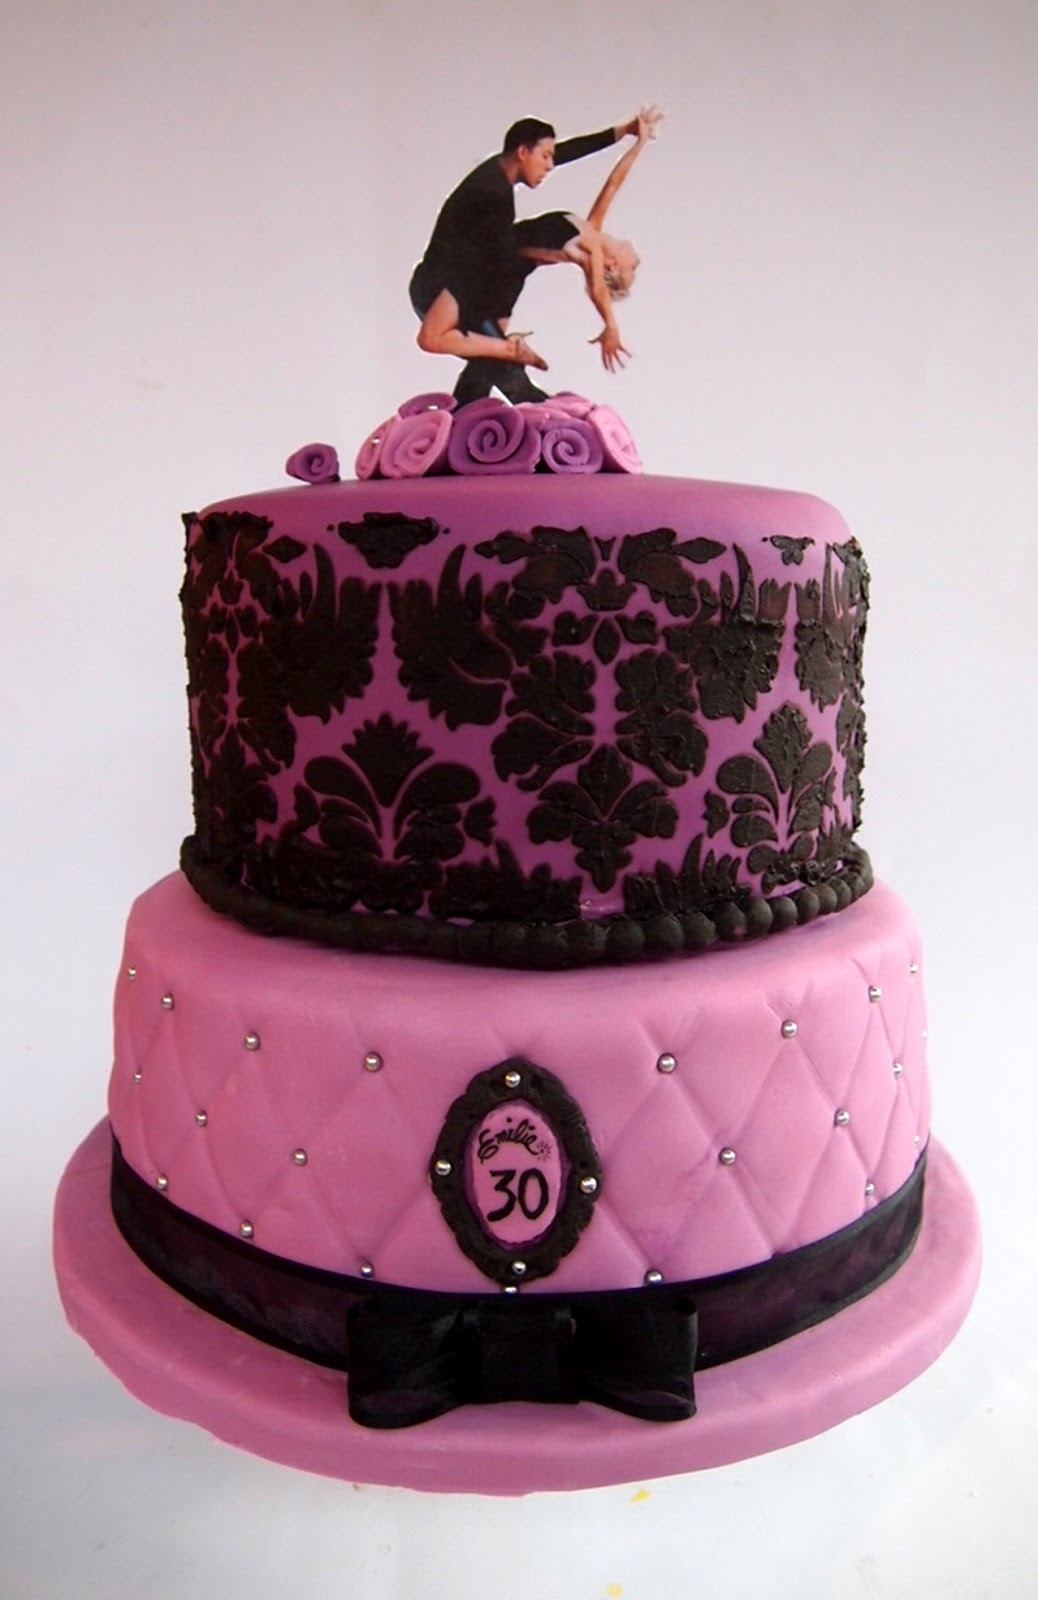 gateau pour fille de 9 ans home baking for you blog photo. Black Bedroom Furniture Sets. Home Design Ideas